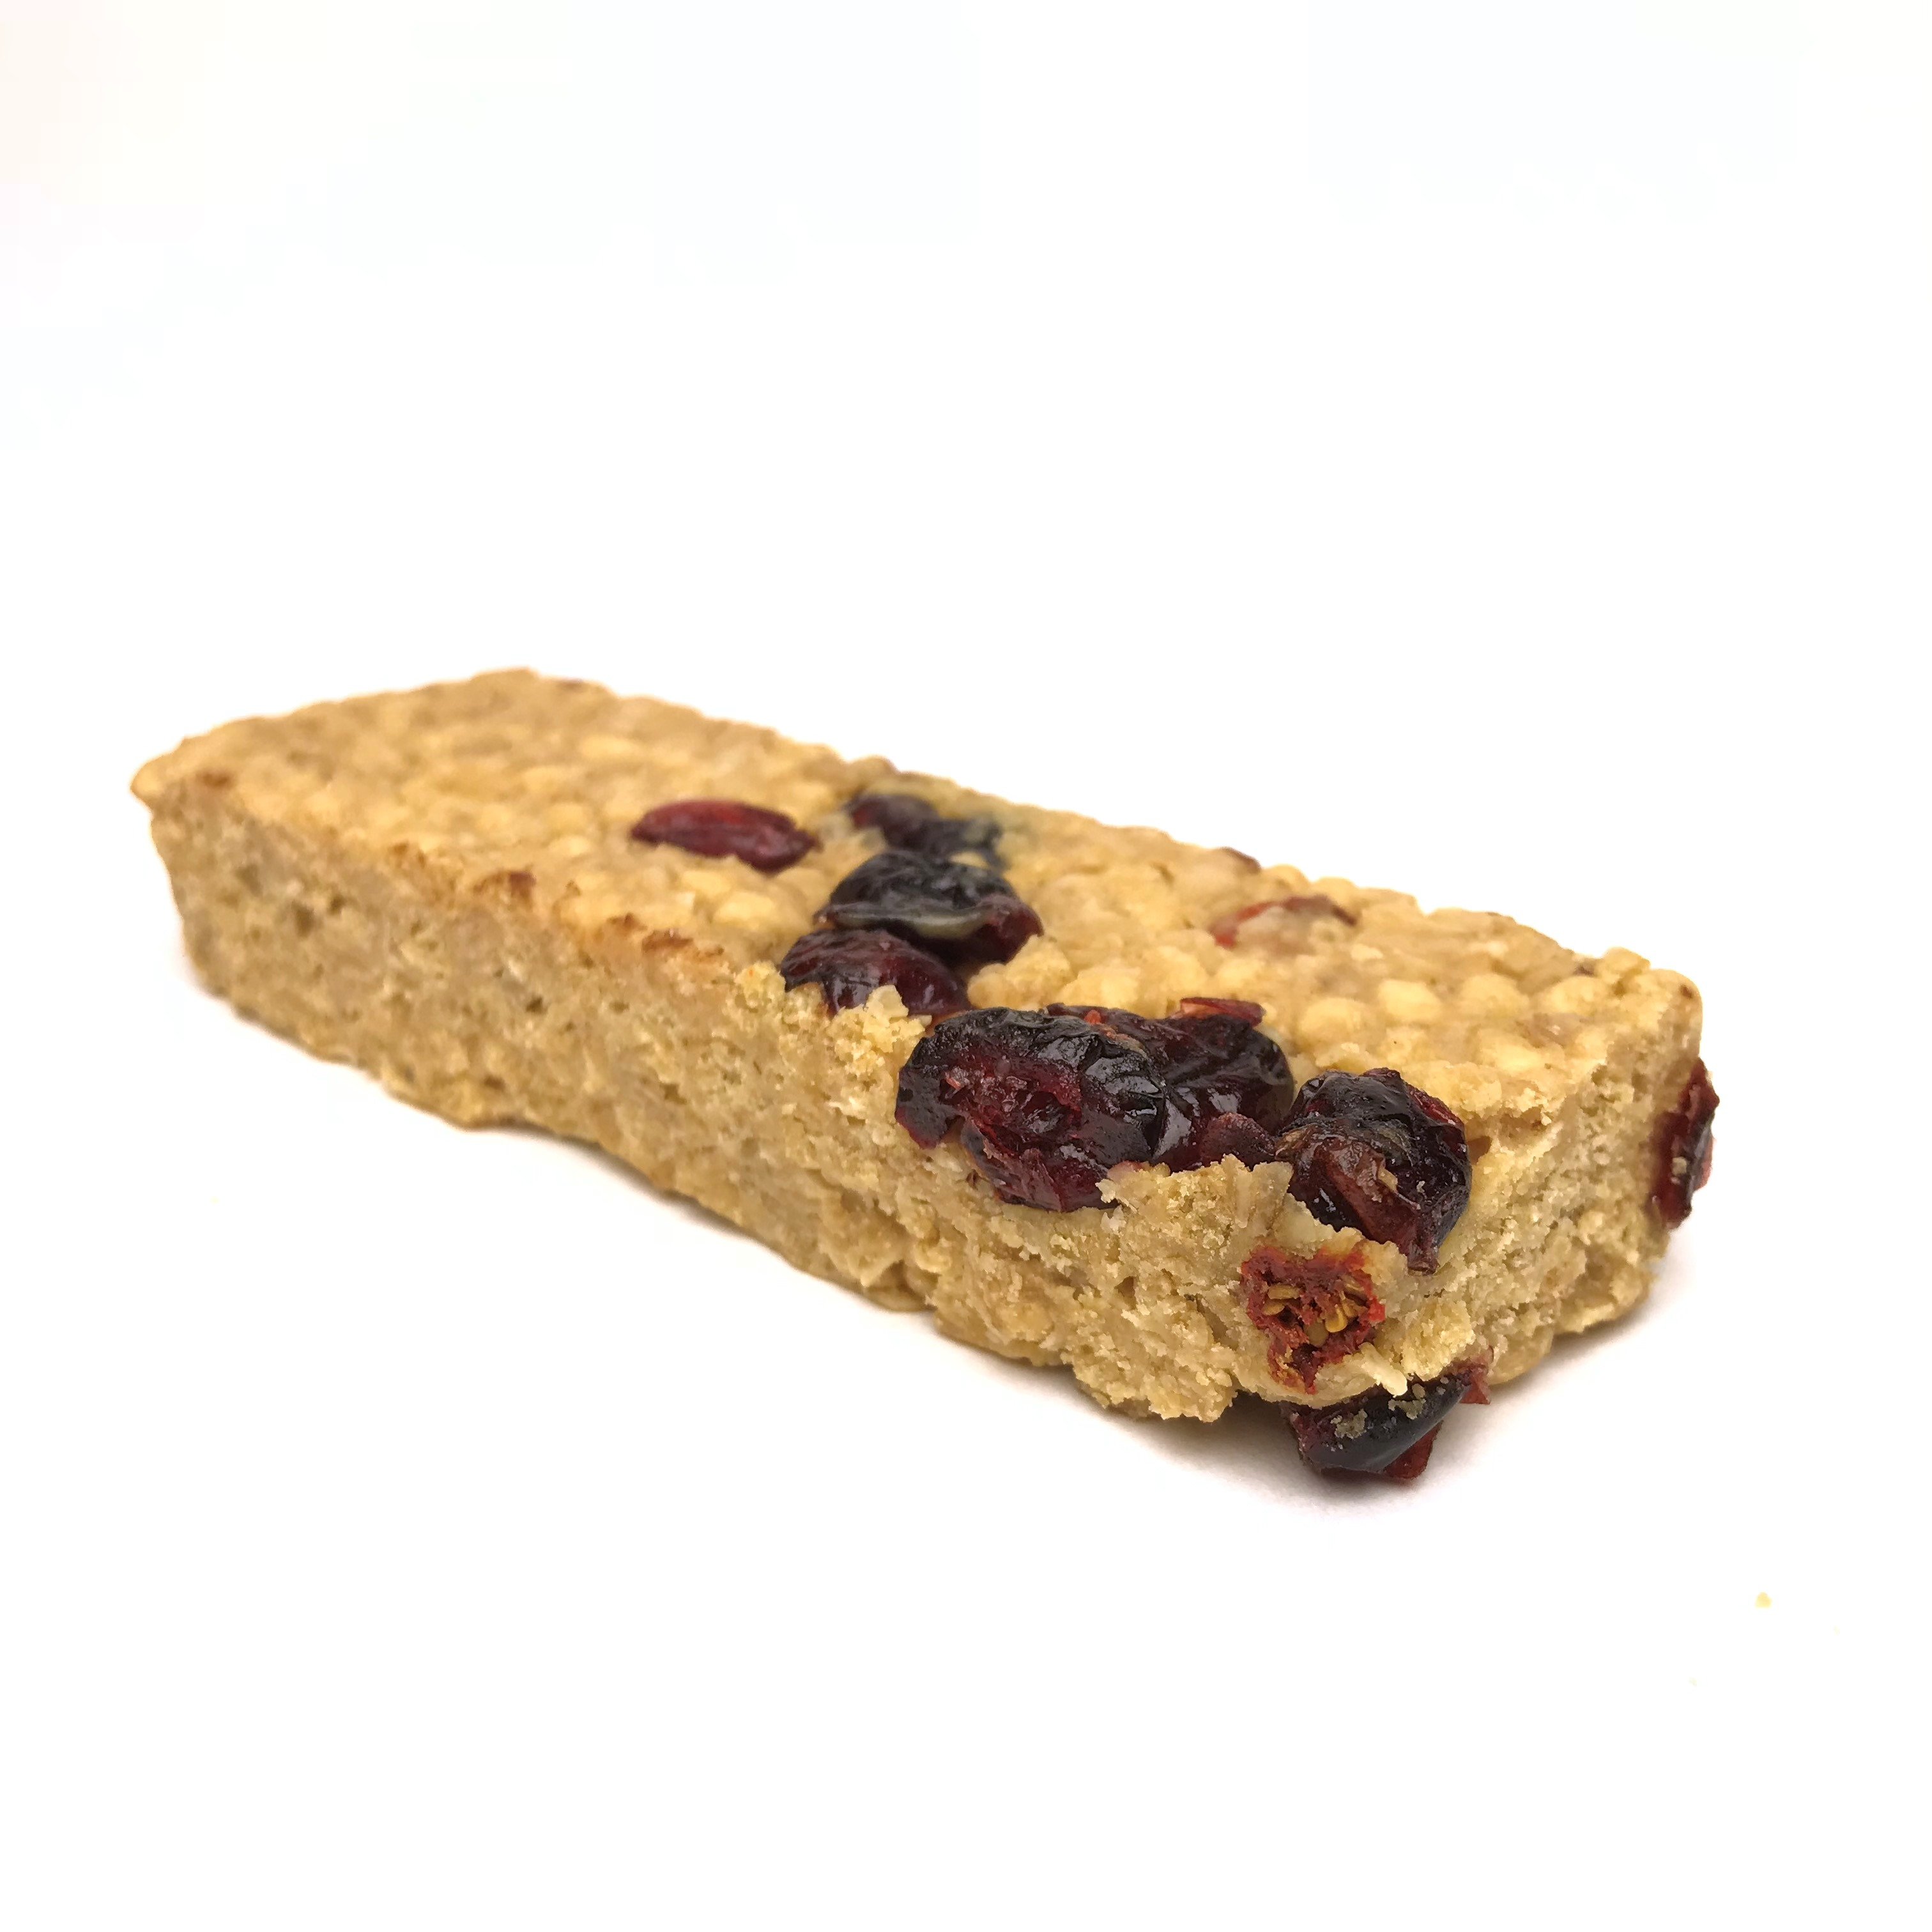 Cranberry Protein Bar Out of wrapper